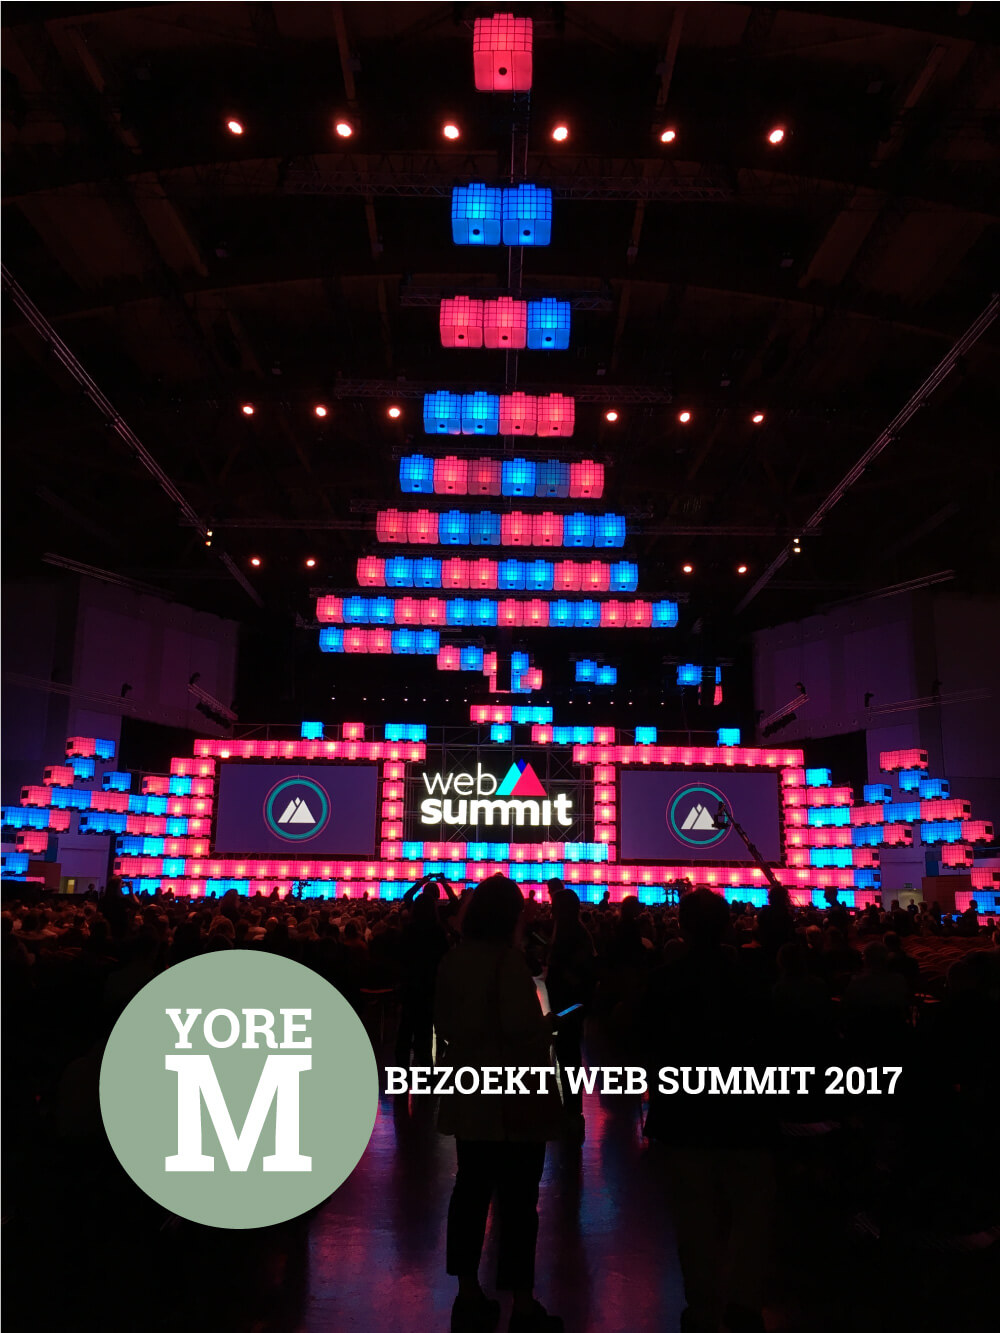 websummit-yorem-1